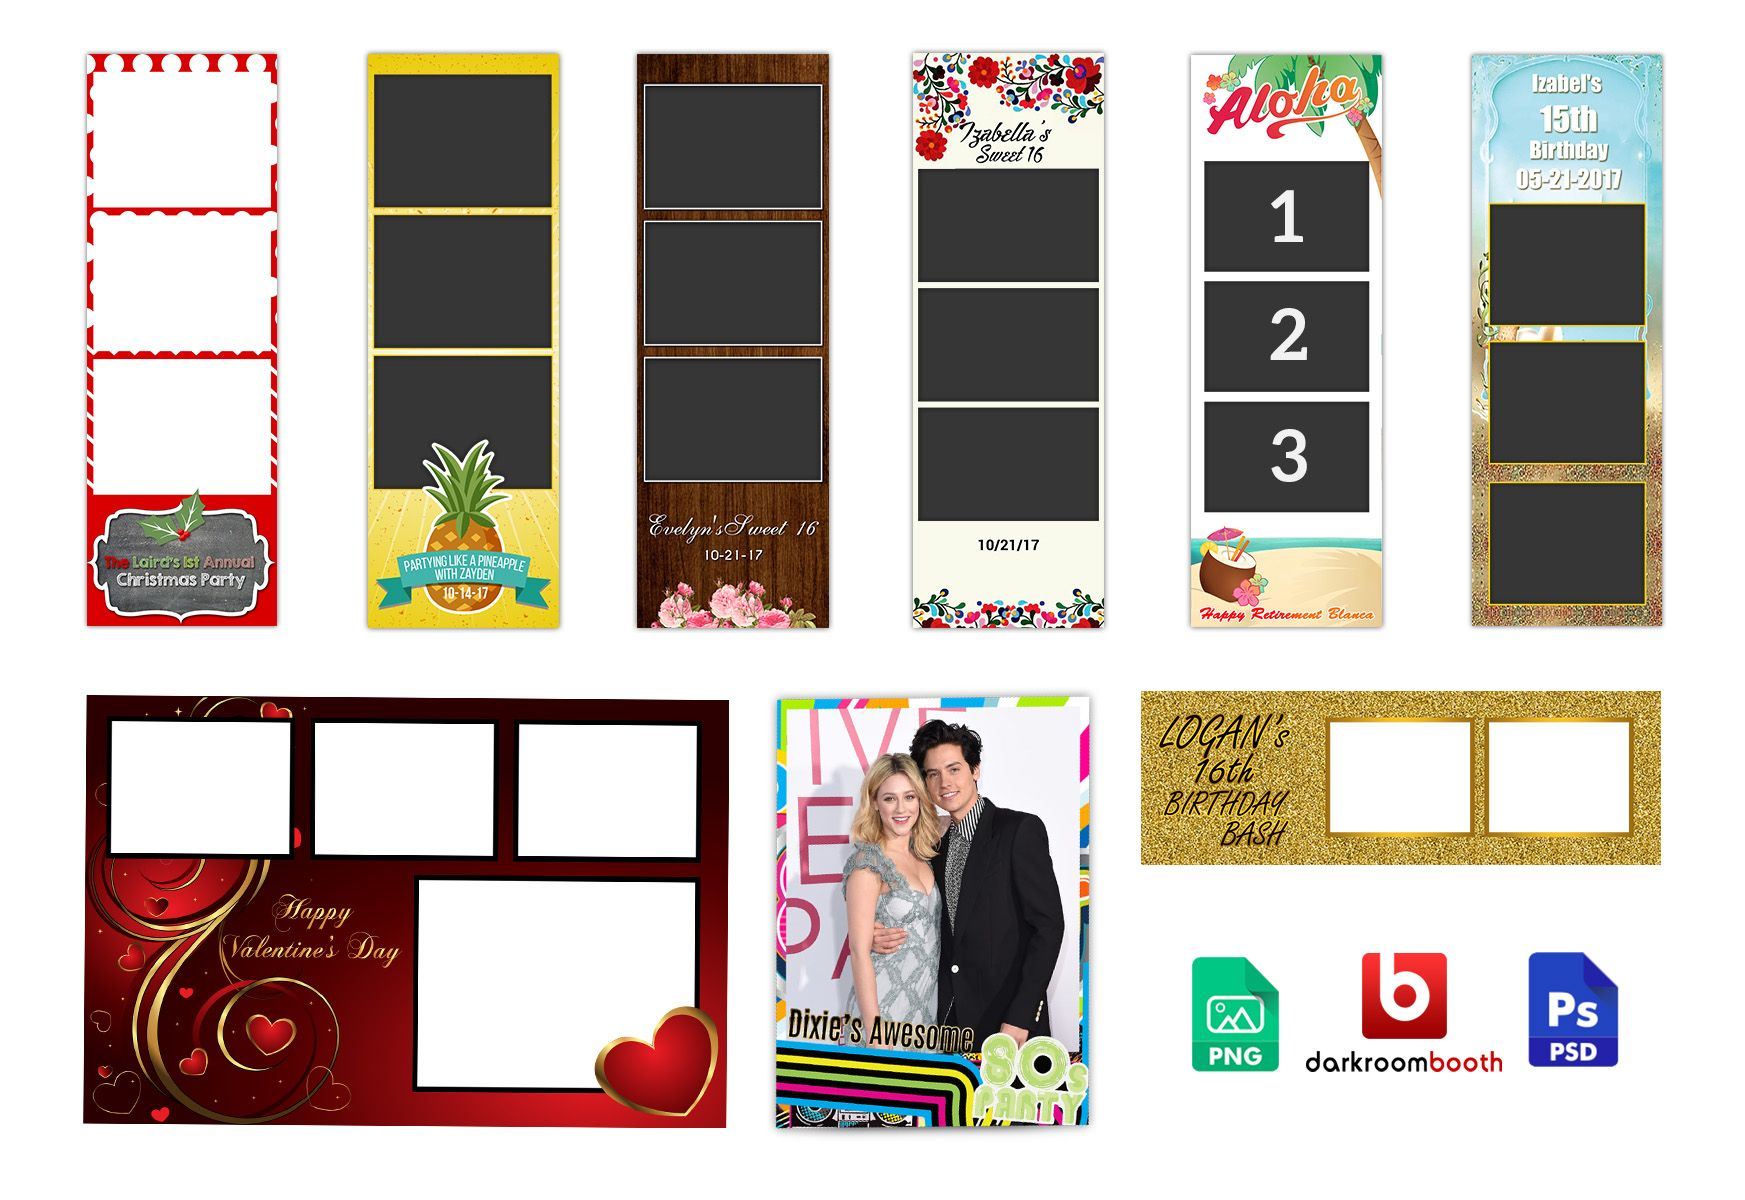 Khairuzzaman I Will Design Photo Booth Template Photo Sripe Xbdr Png For 10 On Fiverr Com Photobooth Template Photo Booth Postcard Design